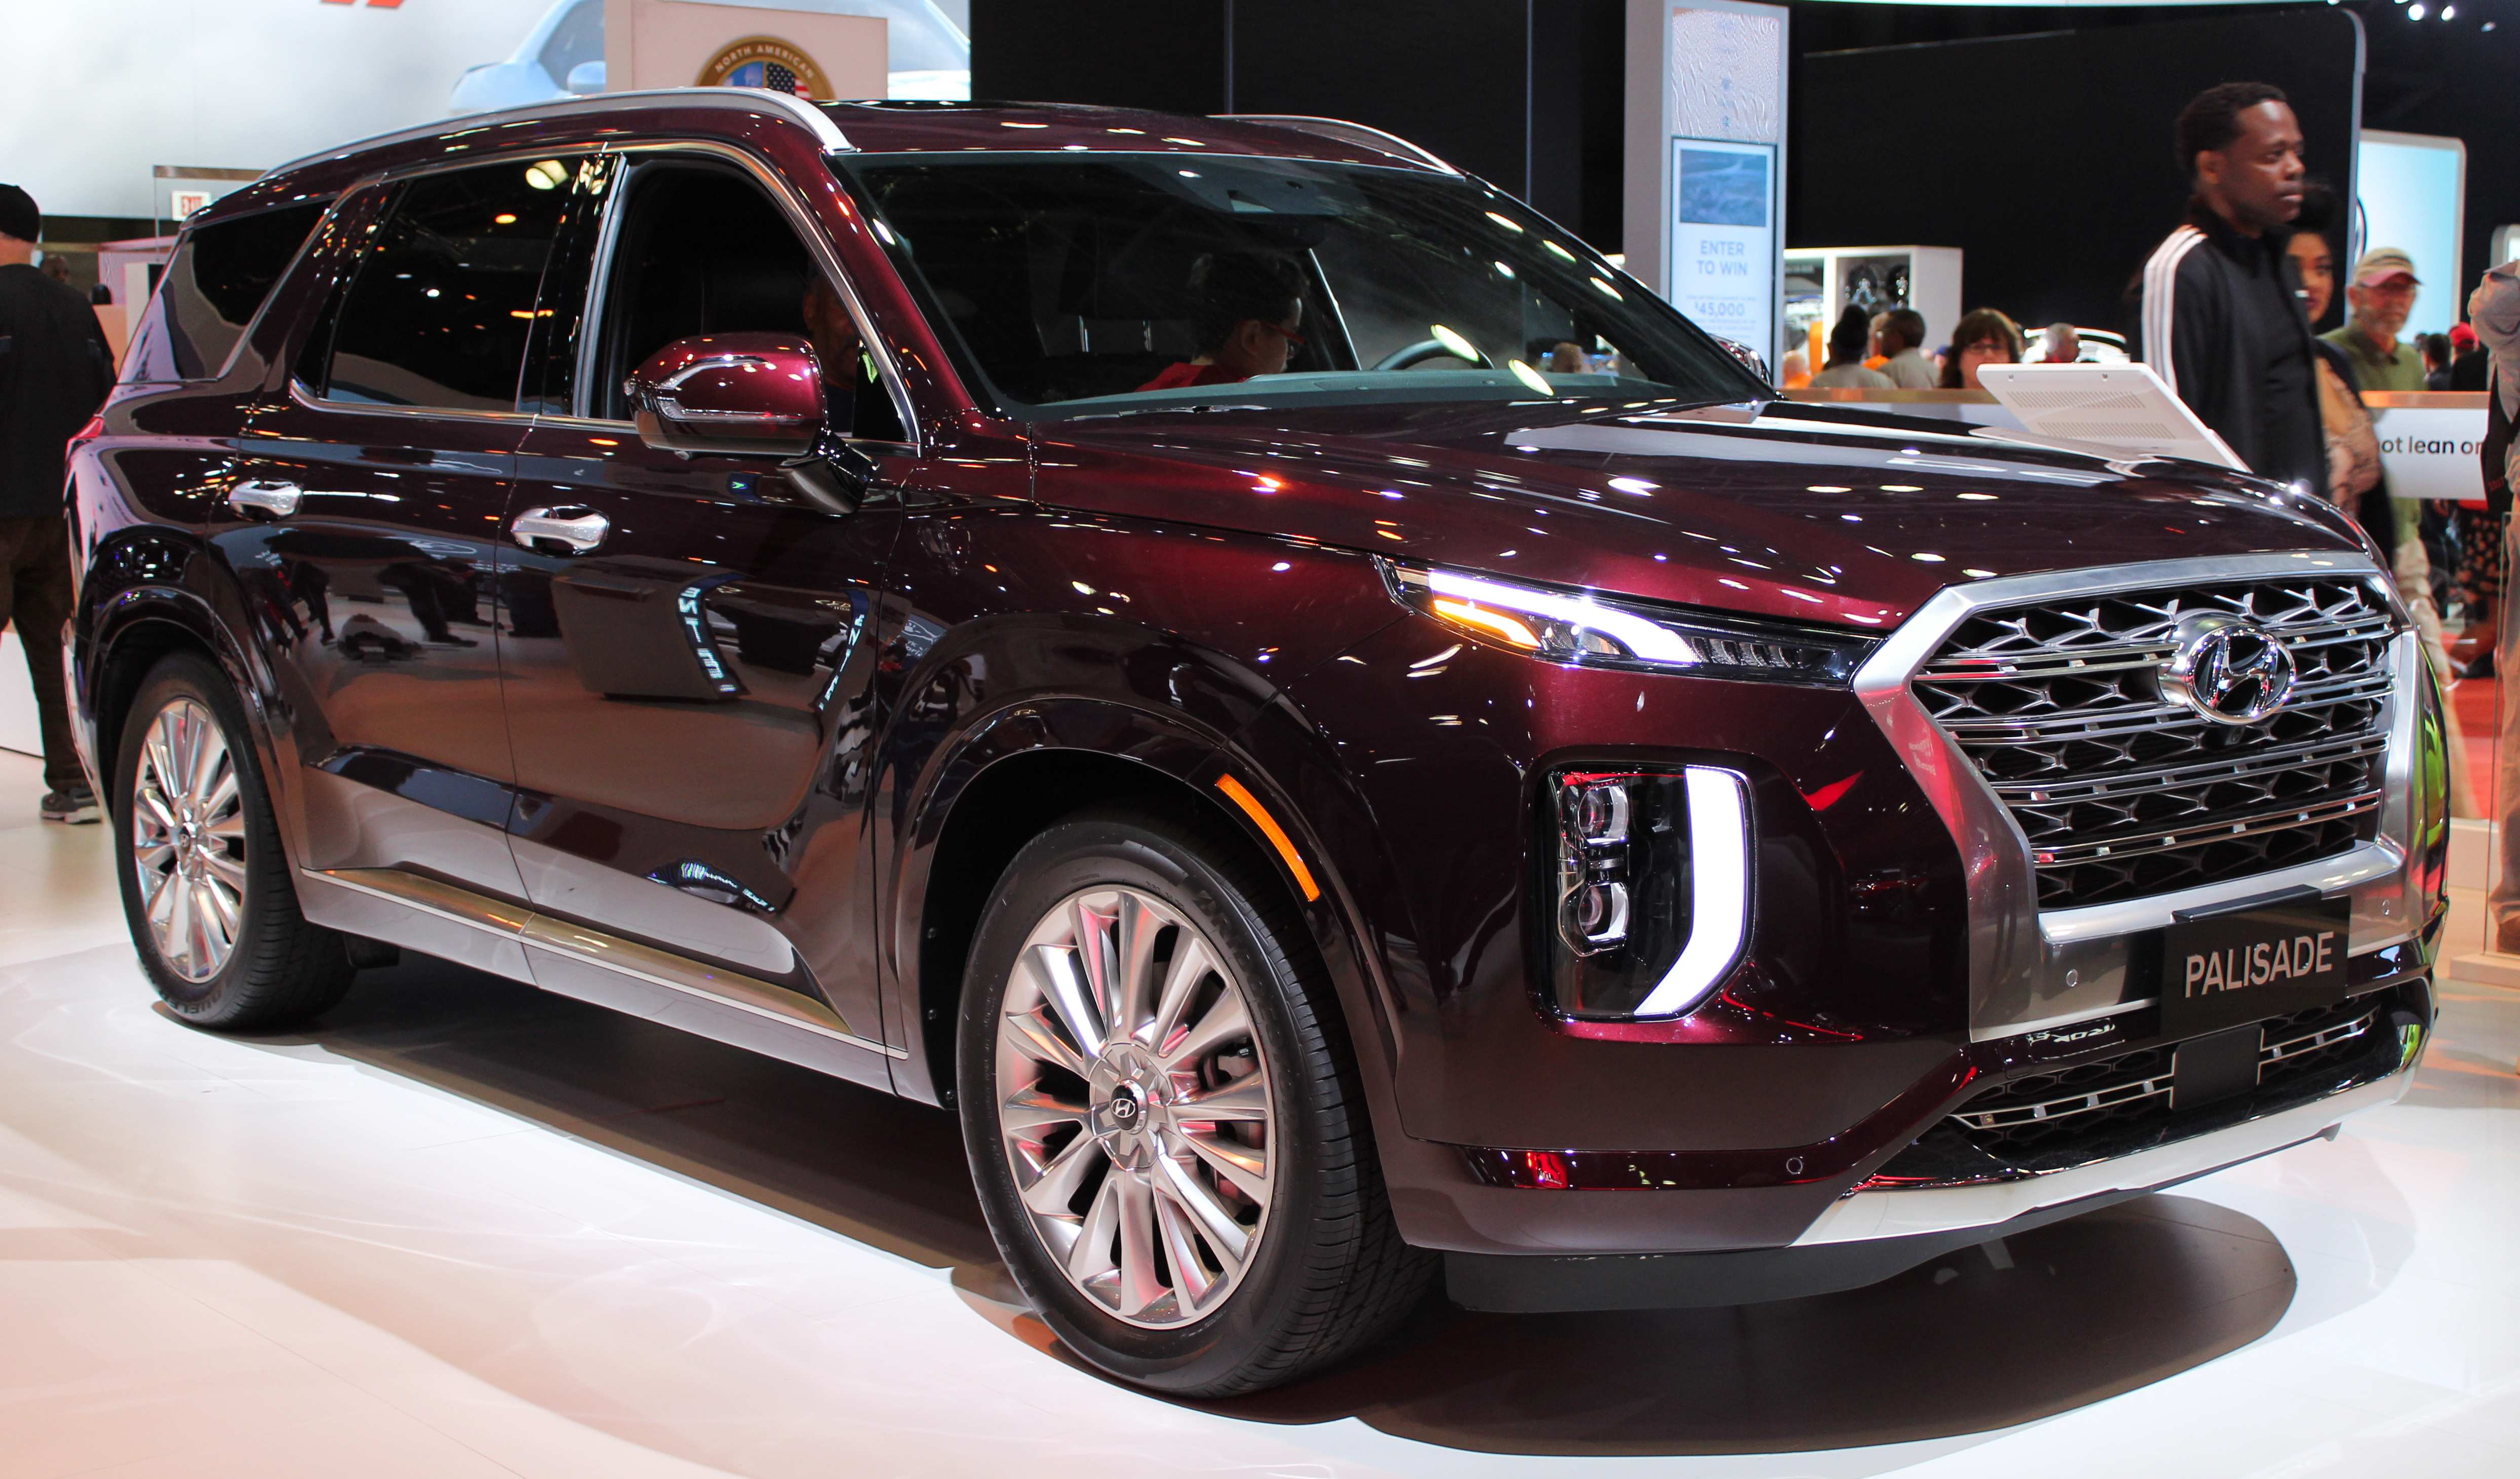 54 New When Will The 2020 Hyundai Palisade Be Available Photos with When Will The 2020 Hyundai Palisade Be Available